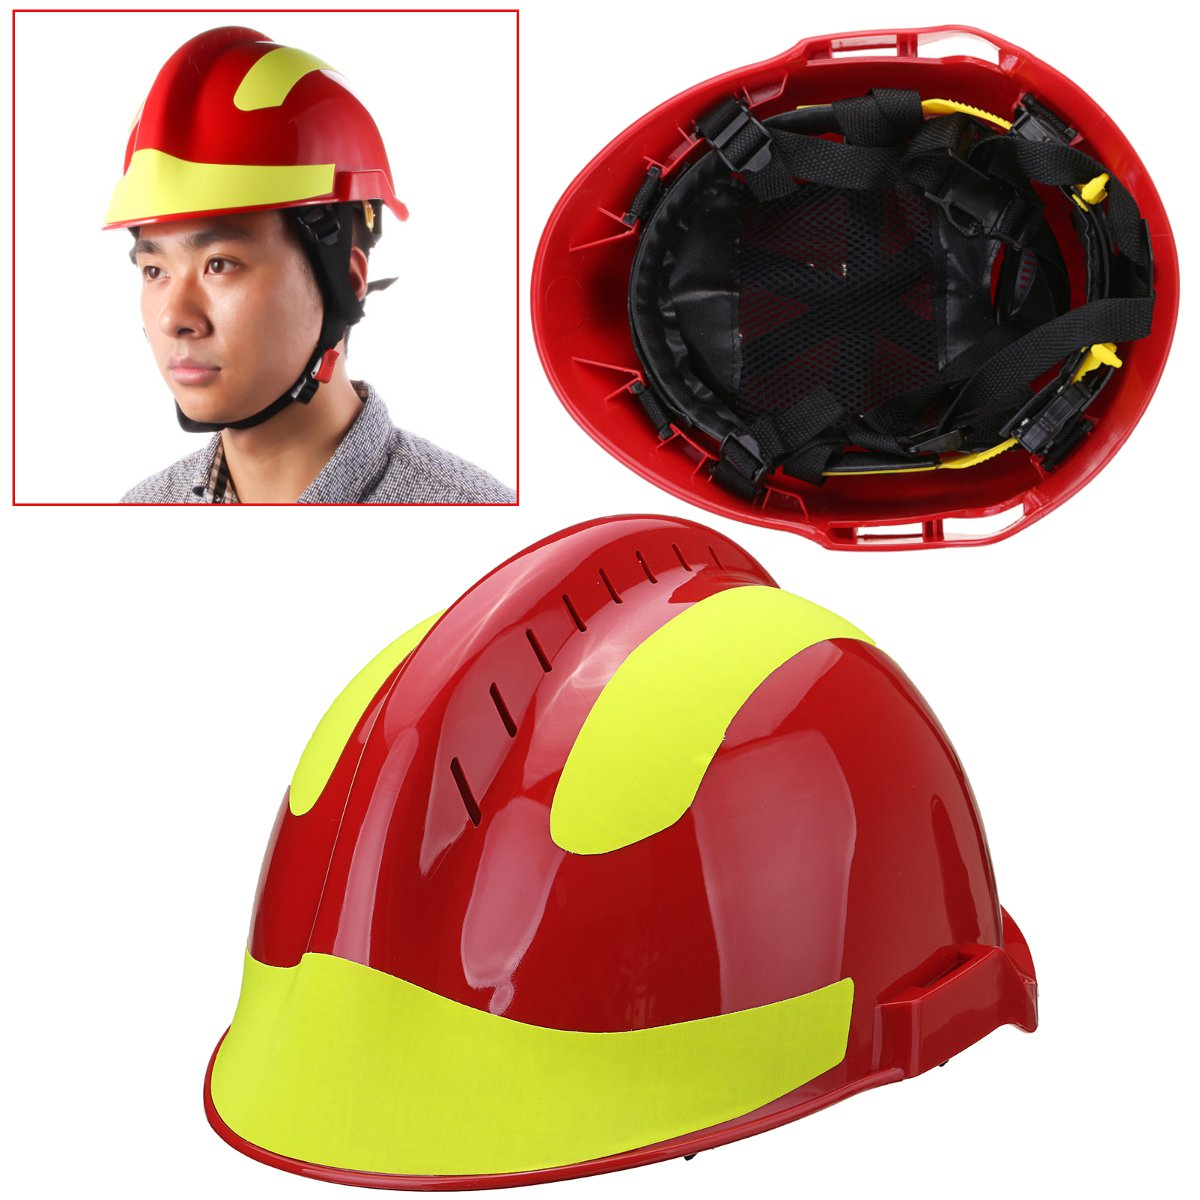 53CM-63CM Safurance Rescue Helmet Fire-Fighter Protective Glasses Safety Protector Workplace Safety Fire-Protection angela royston fire fighter